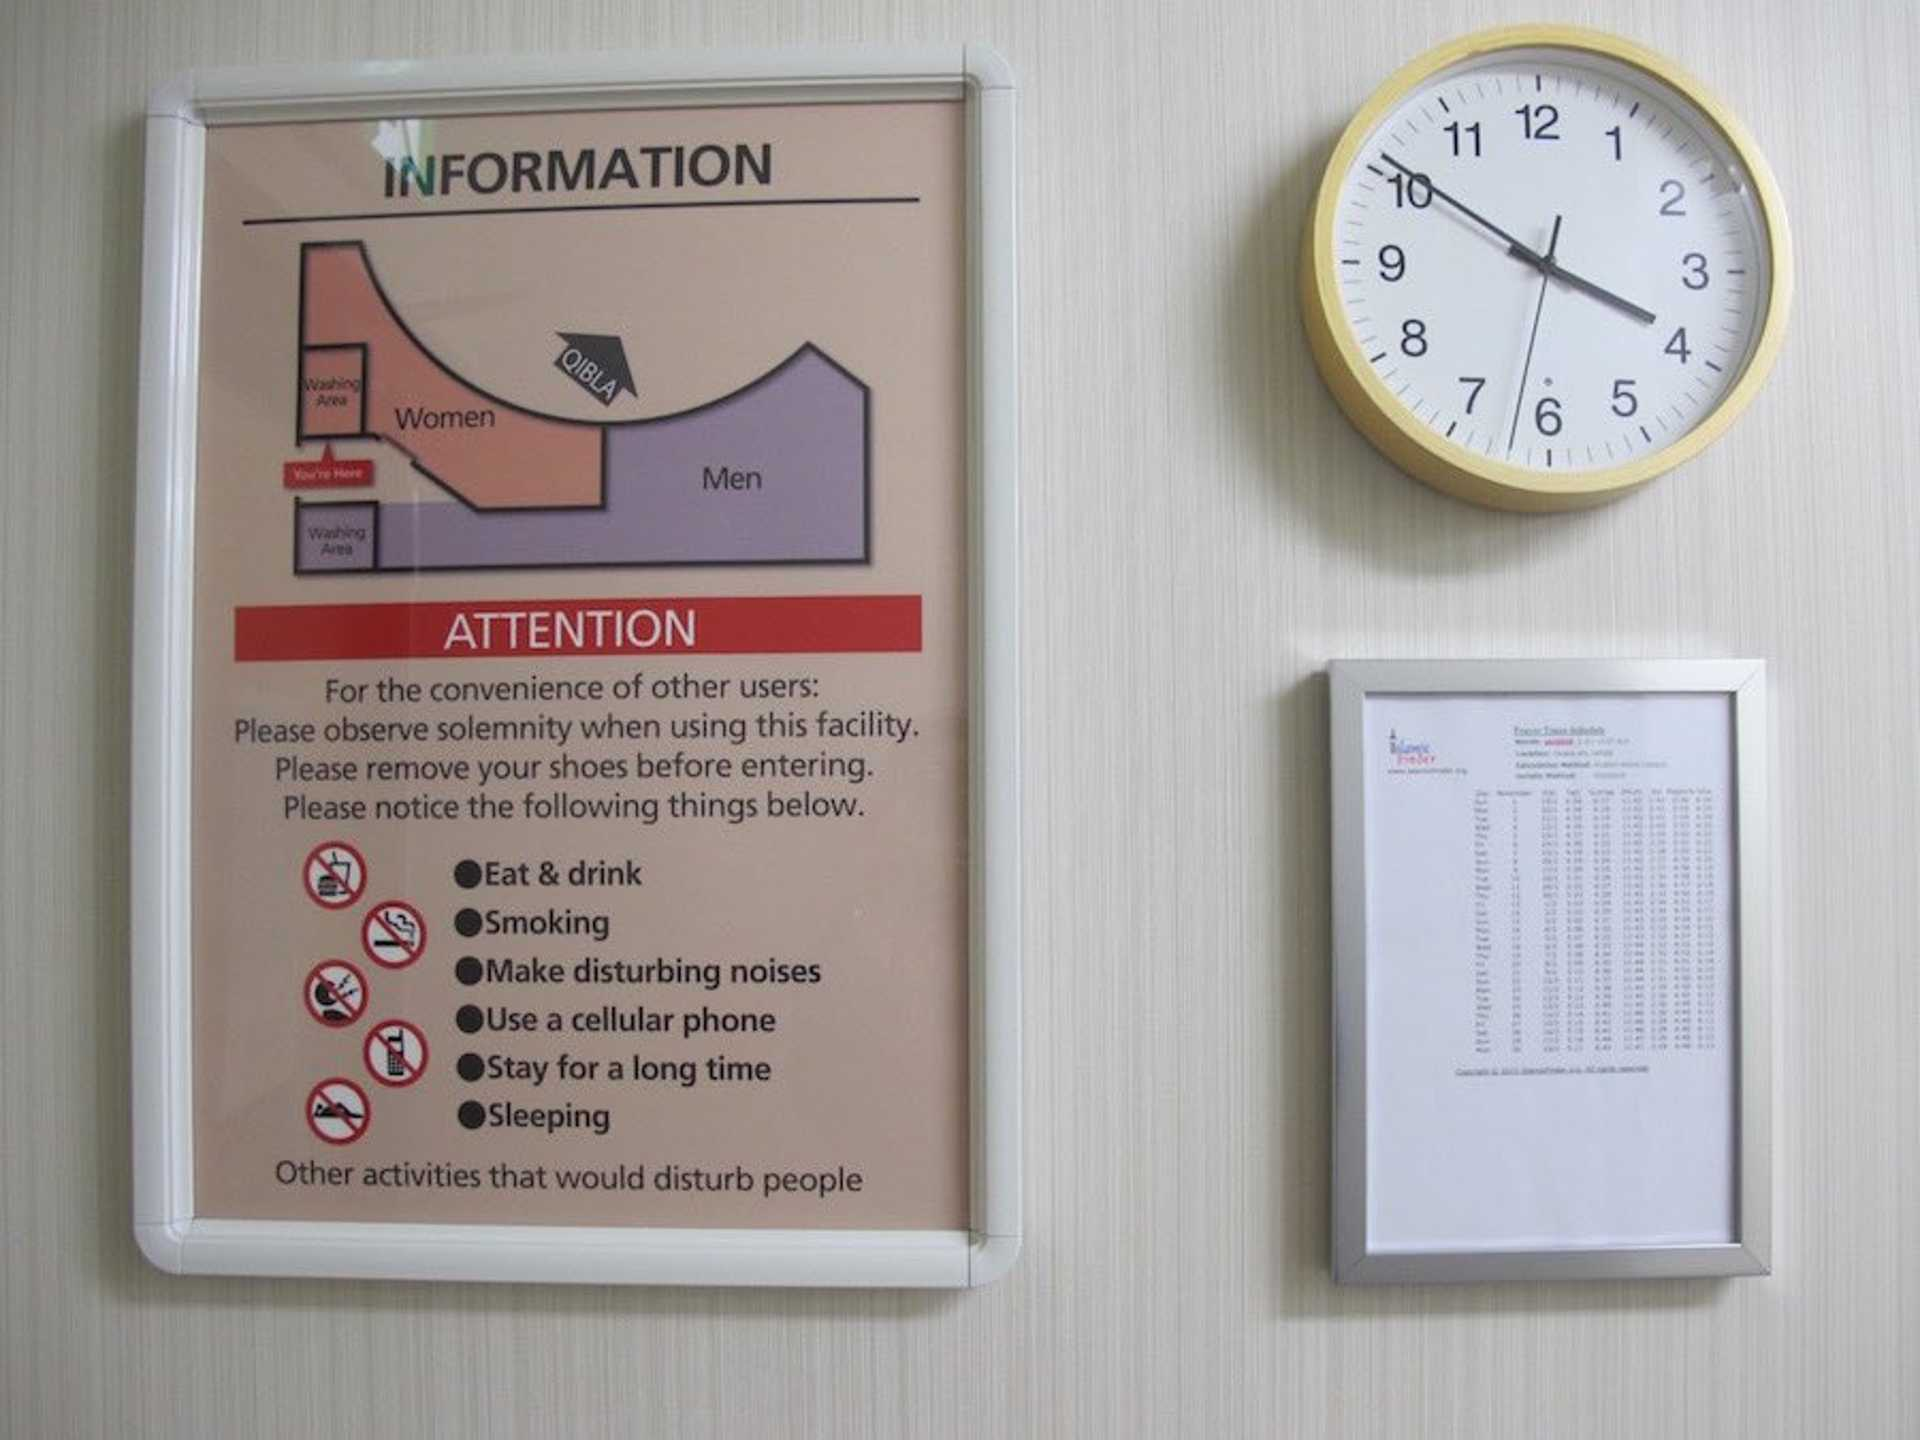 Covering a spacious area of about 51m2, the facility is separated by gender and an ablution area is provided. Here, you can also see the do's and don'ts of using the room.